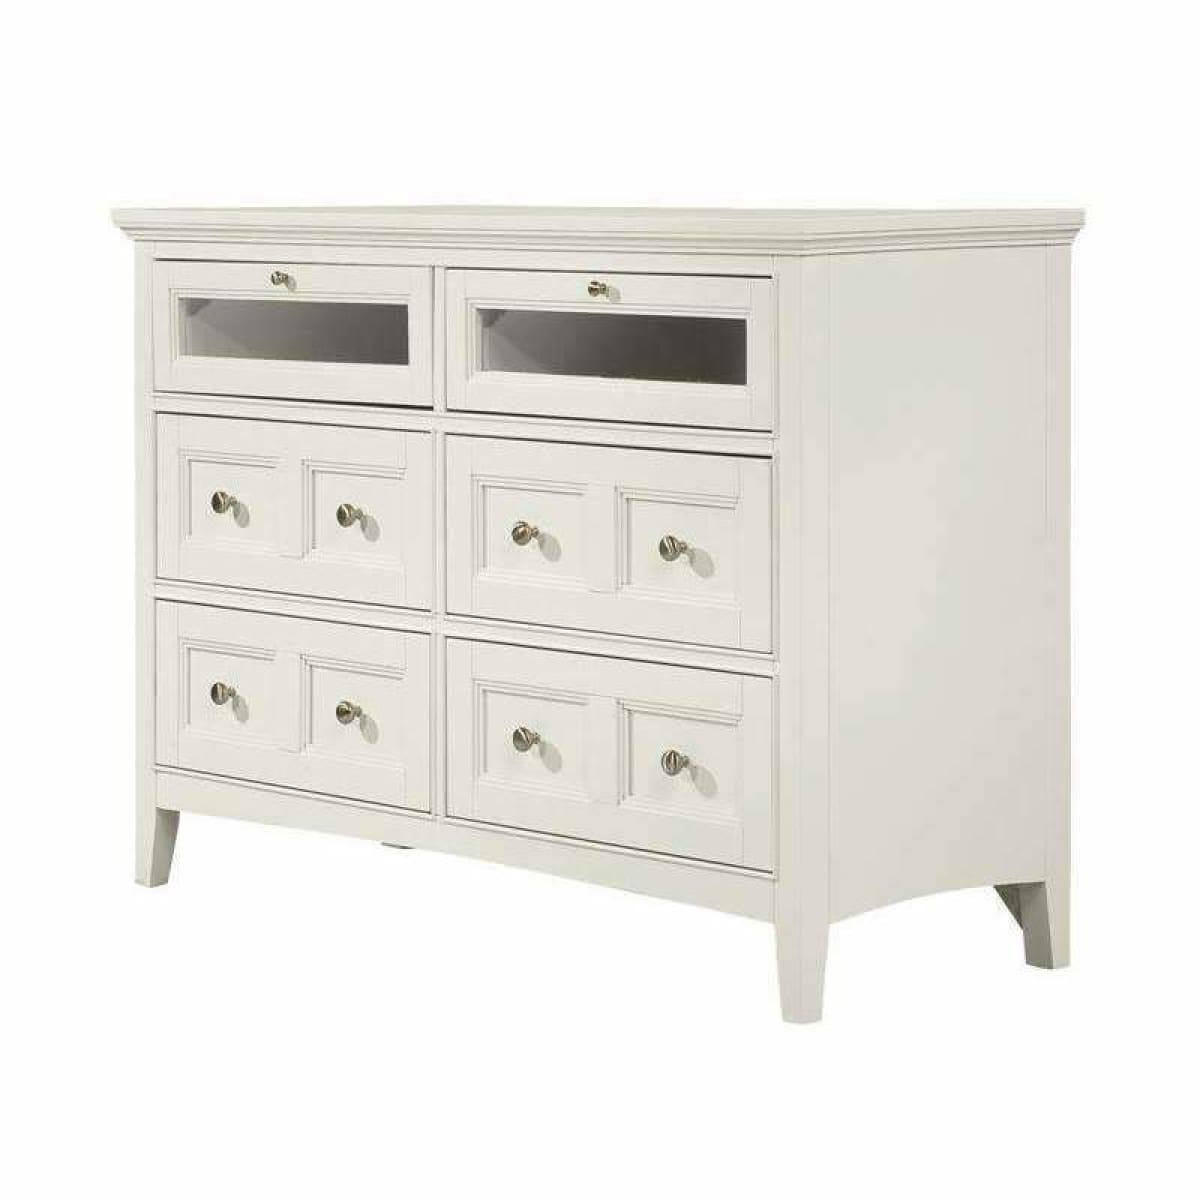 Kentwood Media Chest - chest